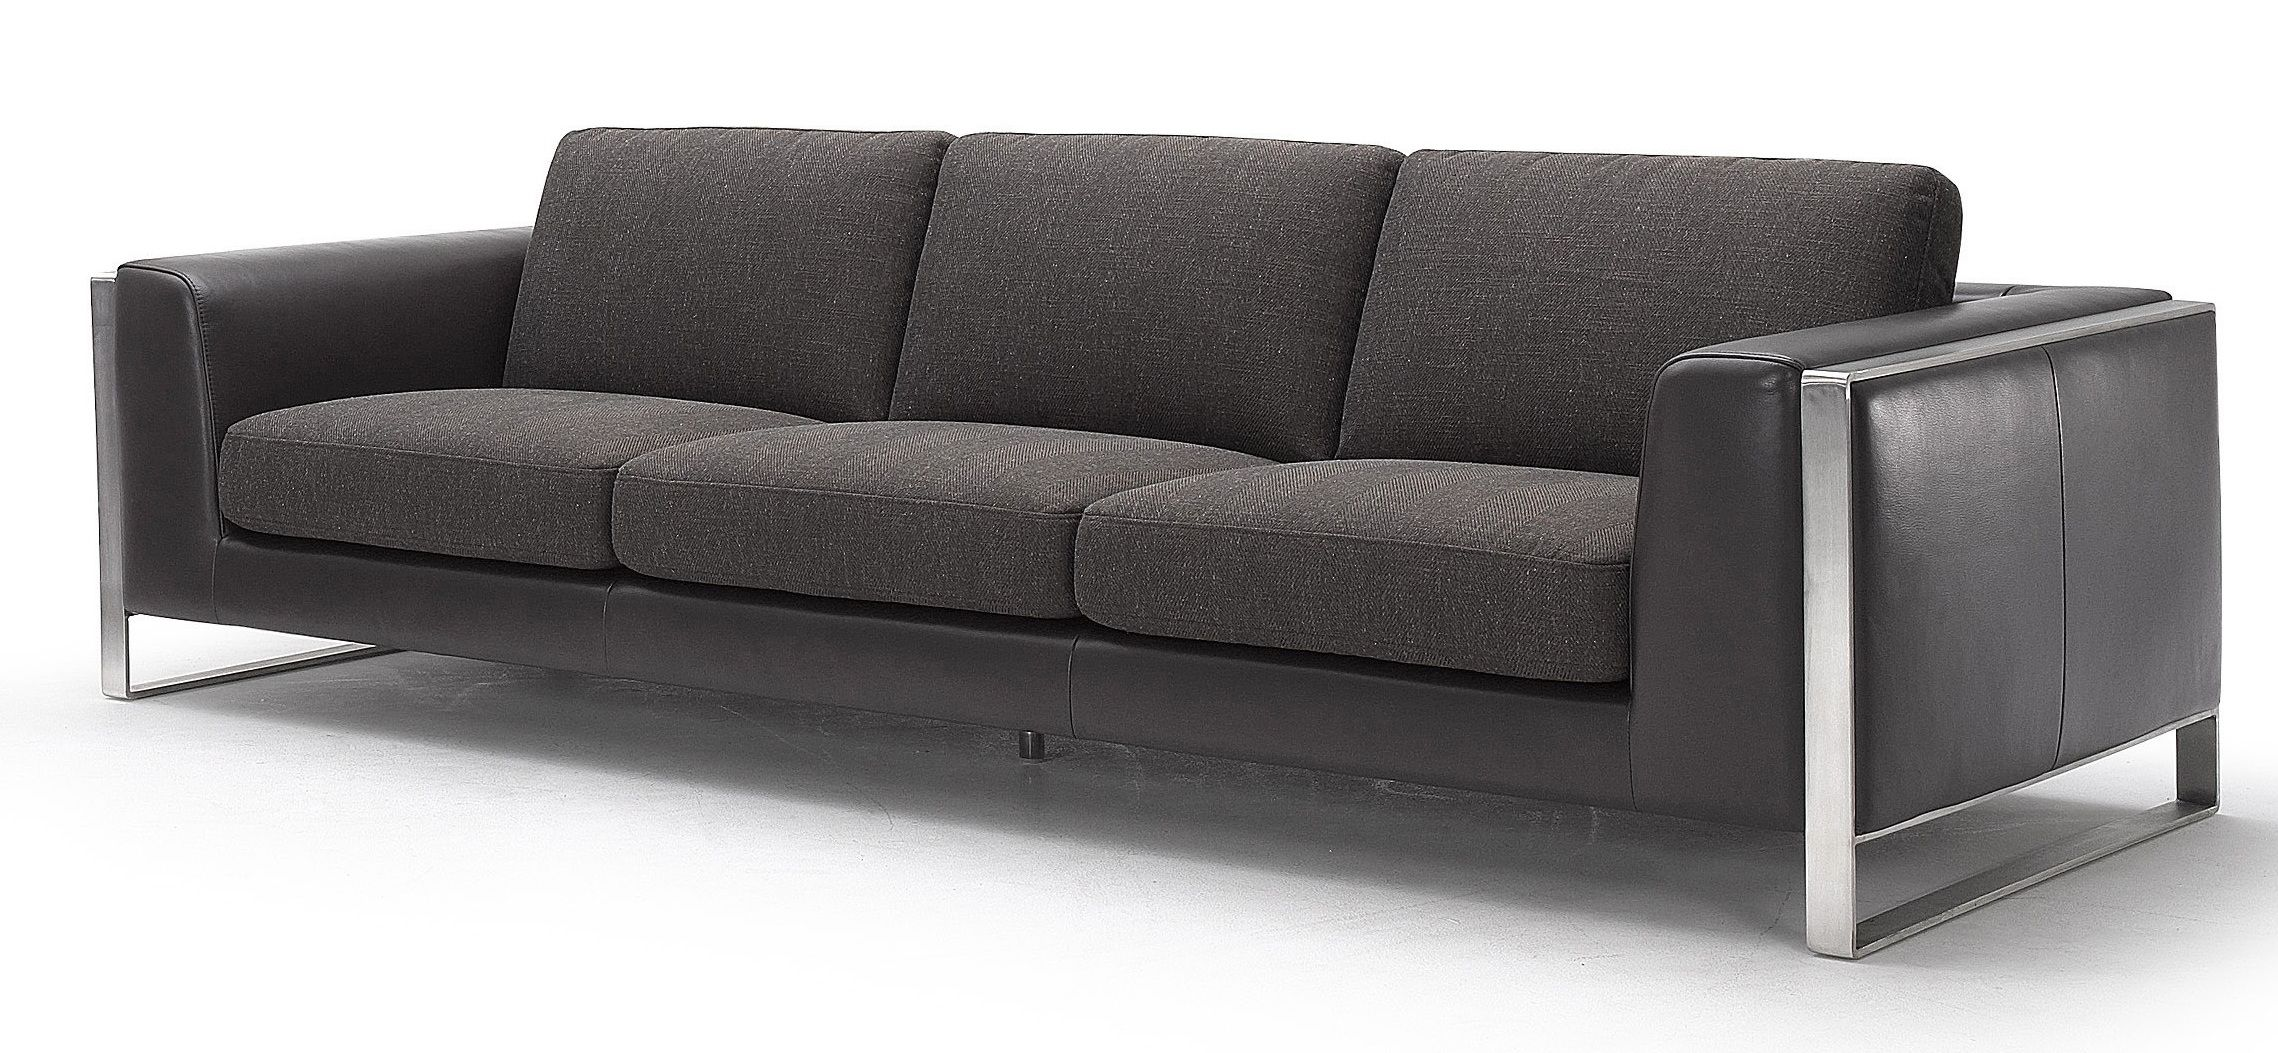 Contemporary Loveseat Home Furniture Improvement With Contemporary Sofa | Huz